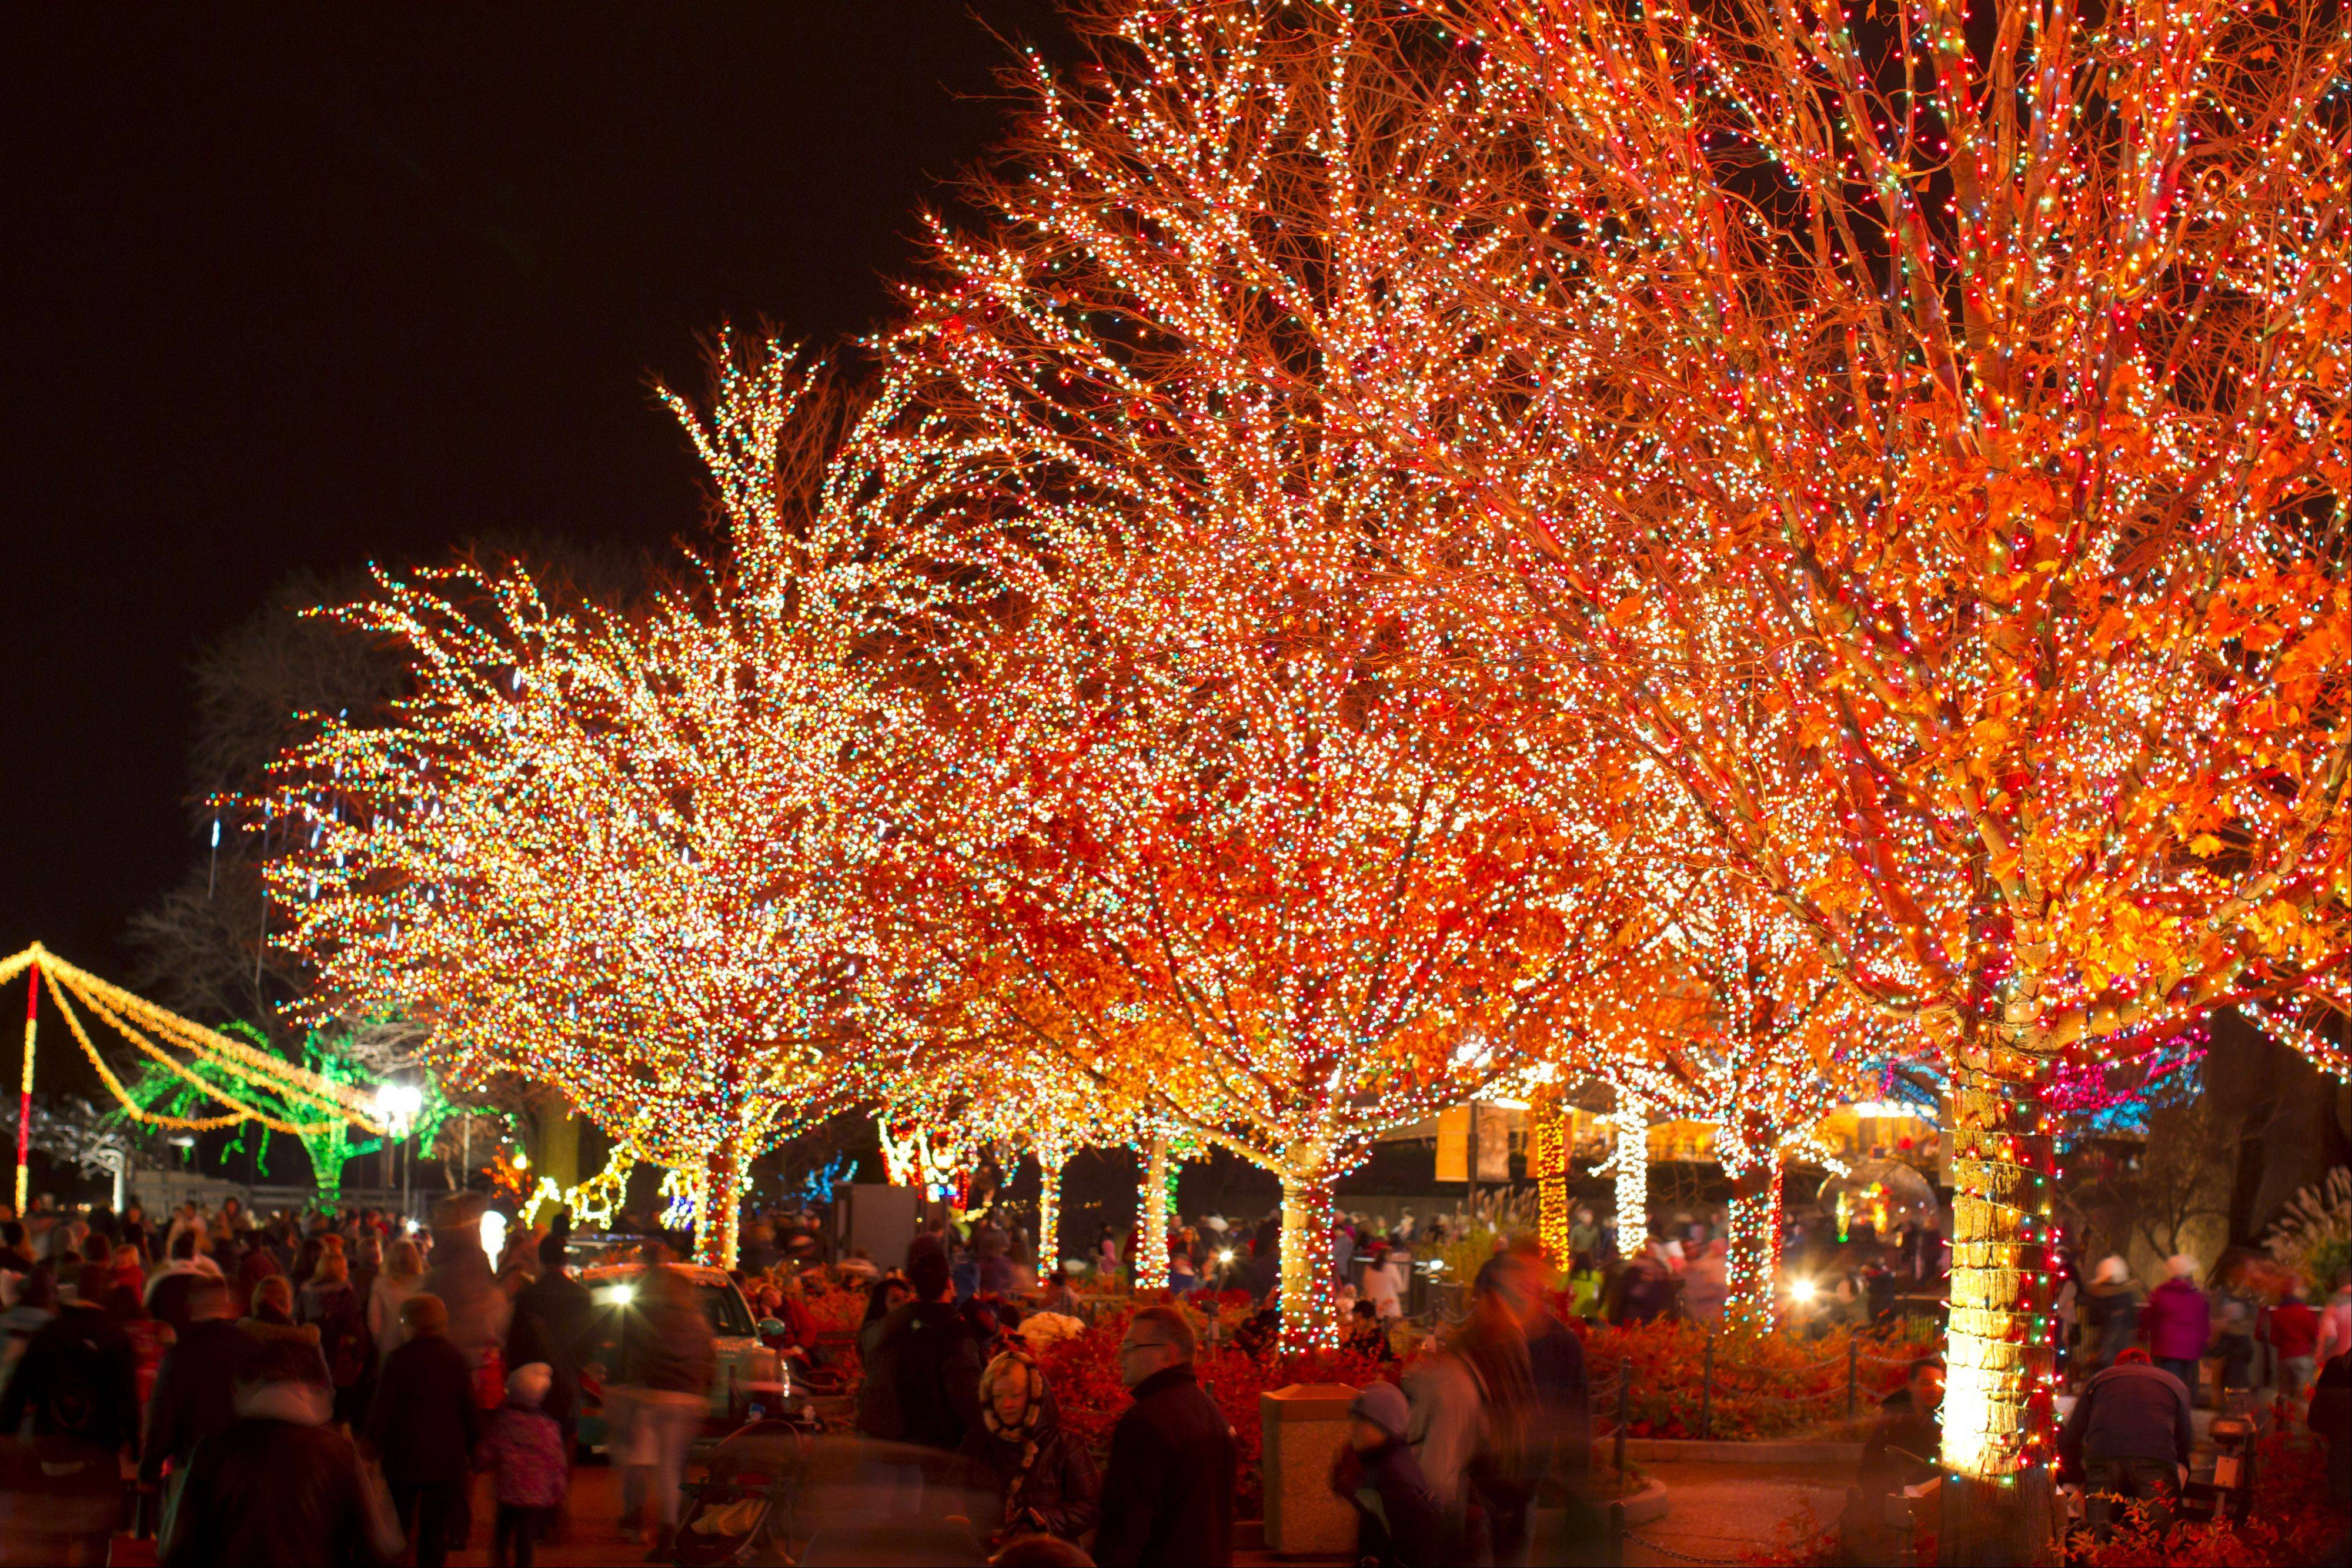 More than 2 million colorful ligths are showcased at the annual ZooLights celebration at Chicago's Lincoln Park Zoo.